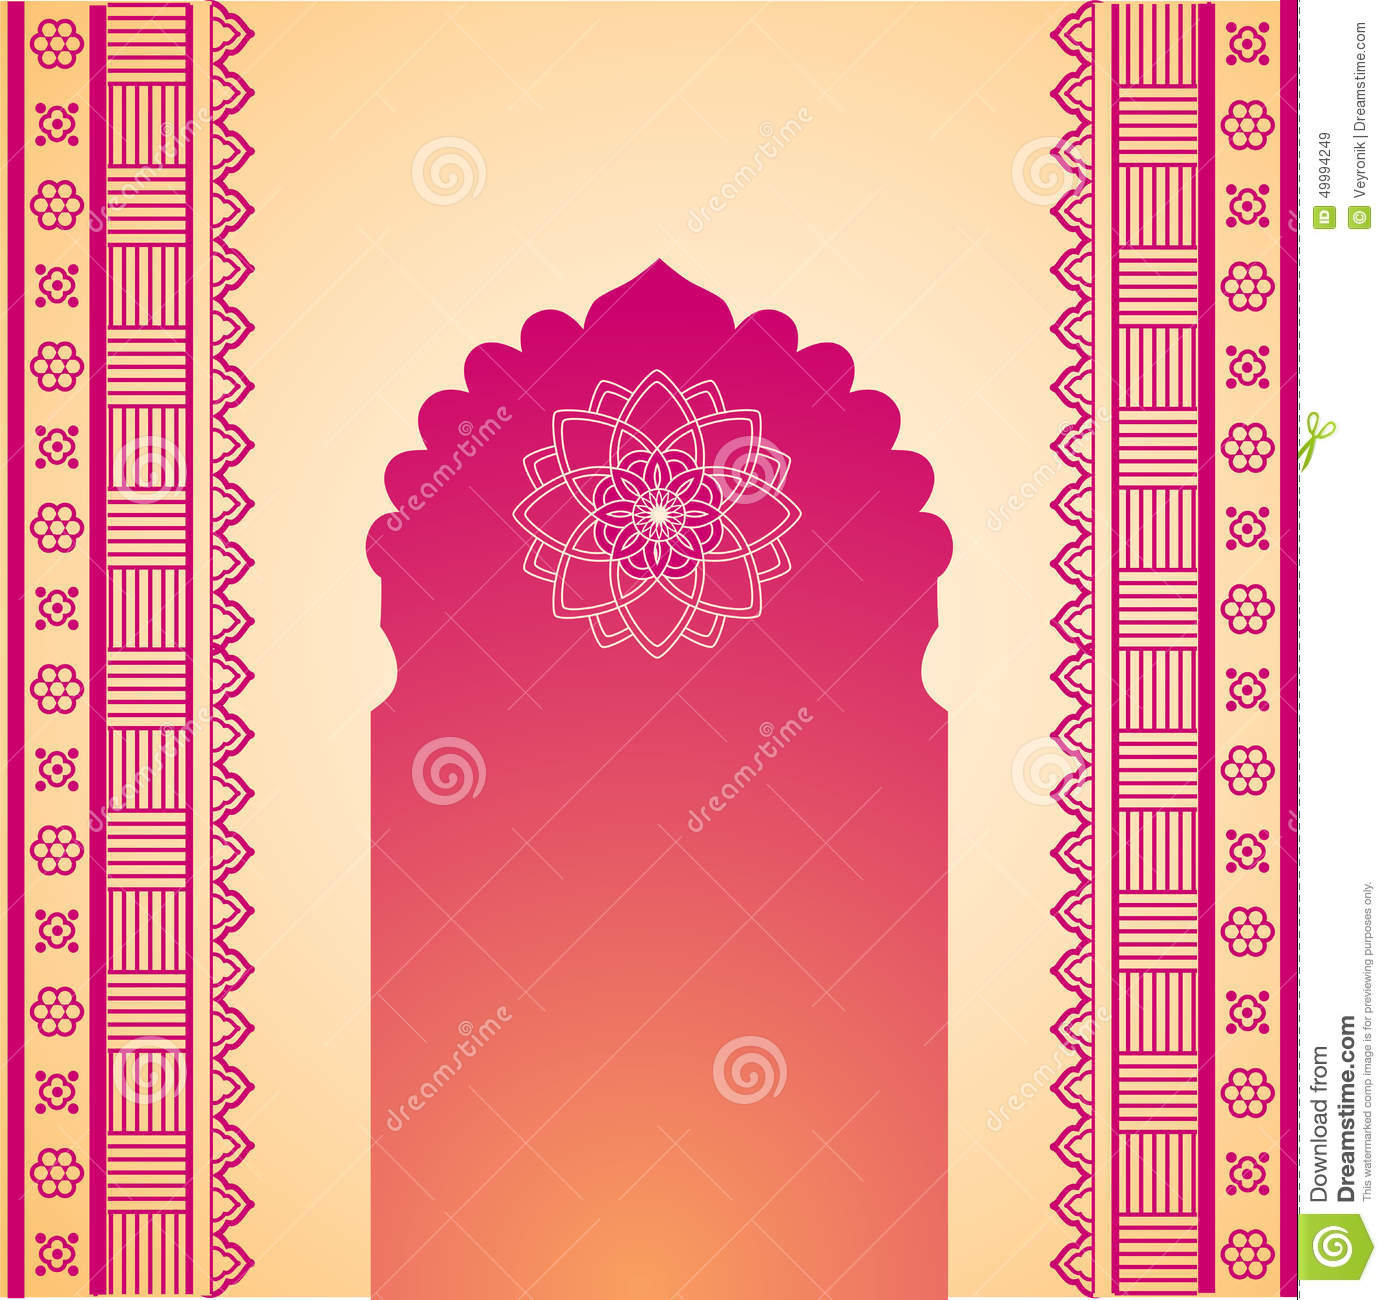 oriental pink and cream henna temple gate background stock